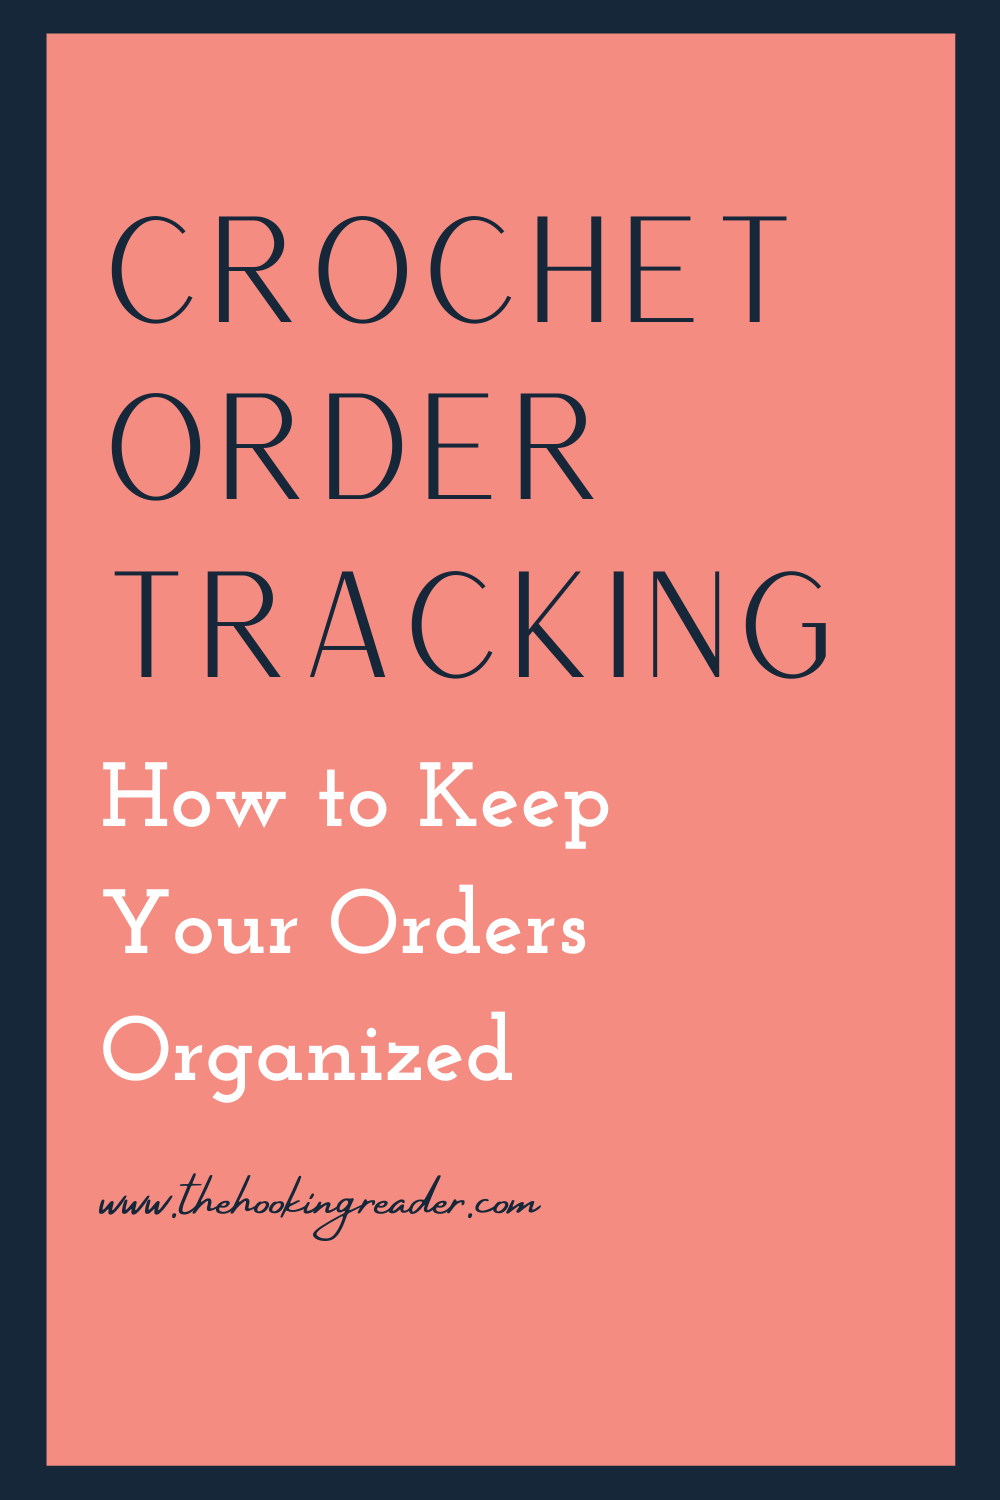 Crochet Order Tracking: How to Keep The Orders Straight